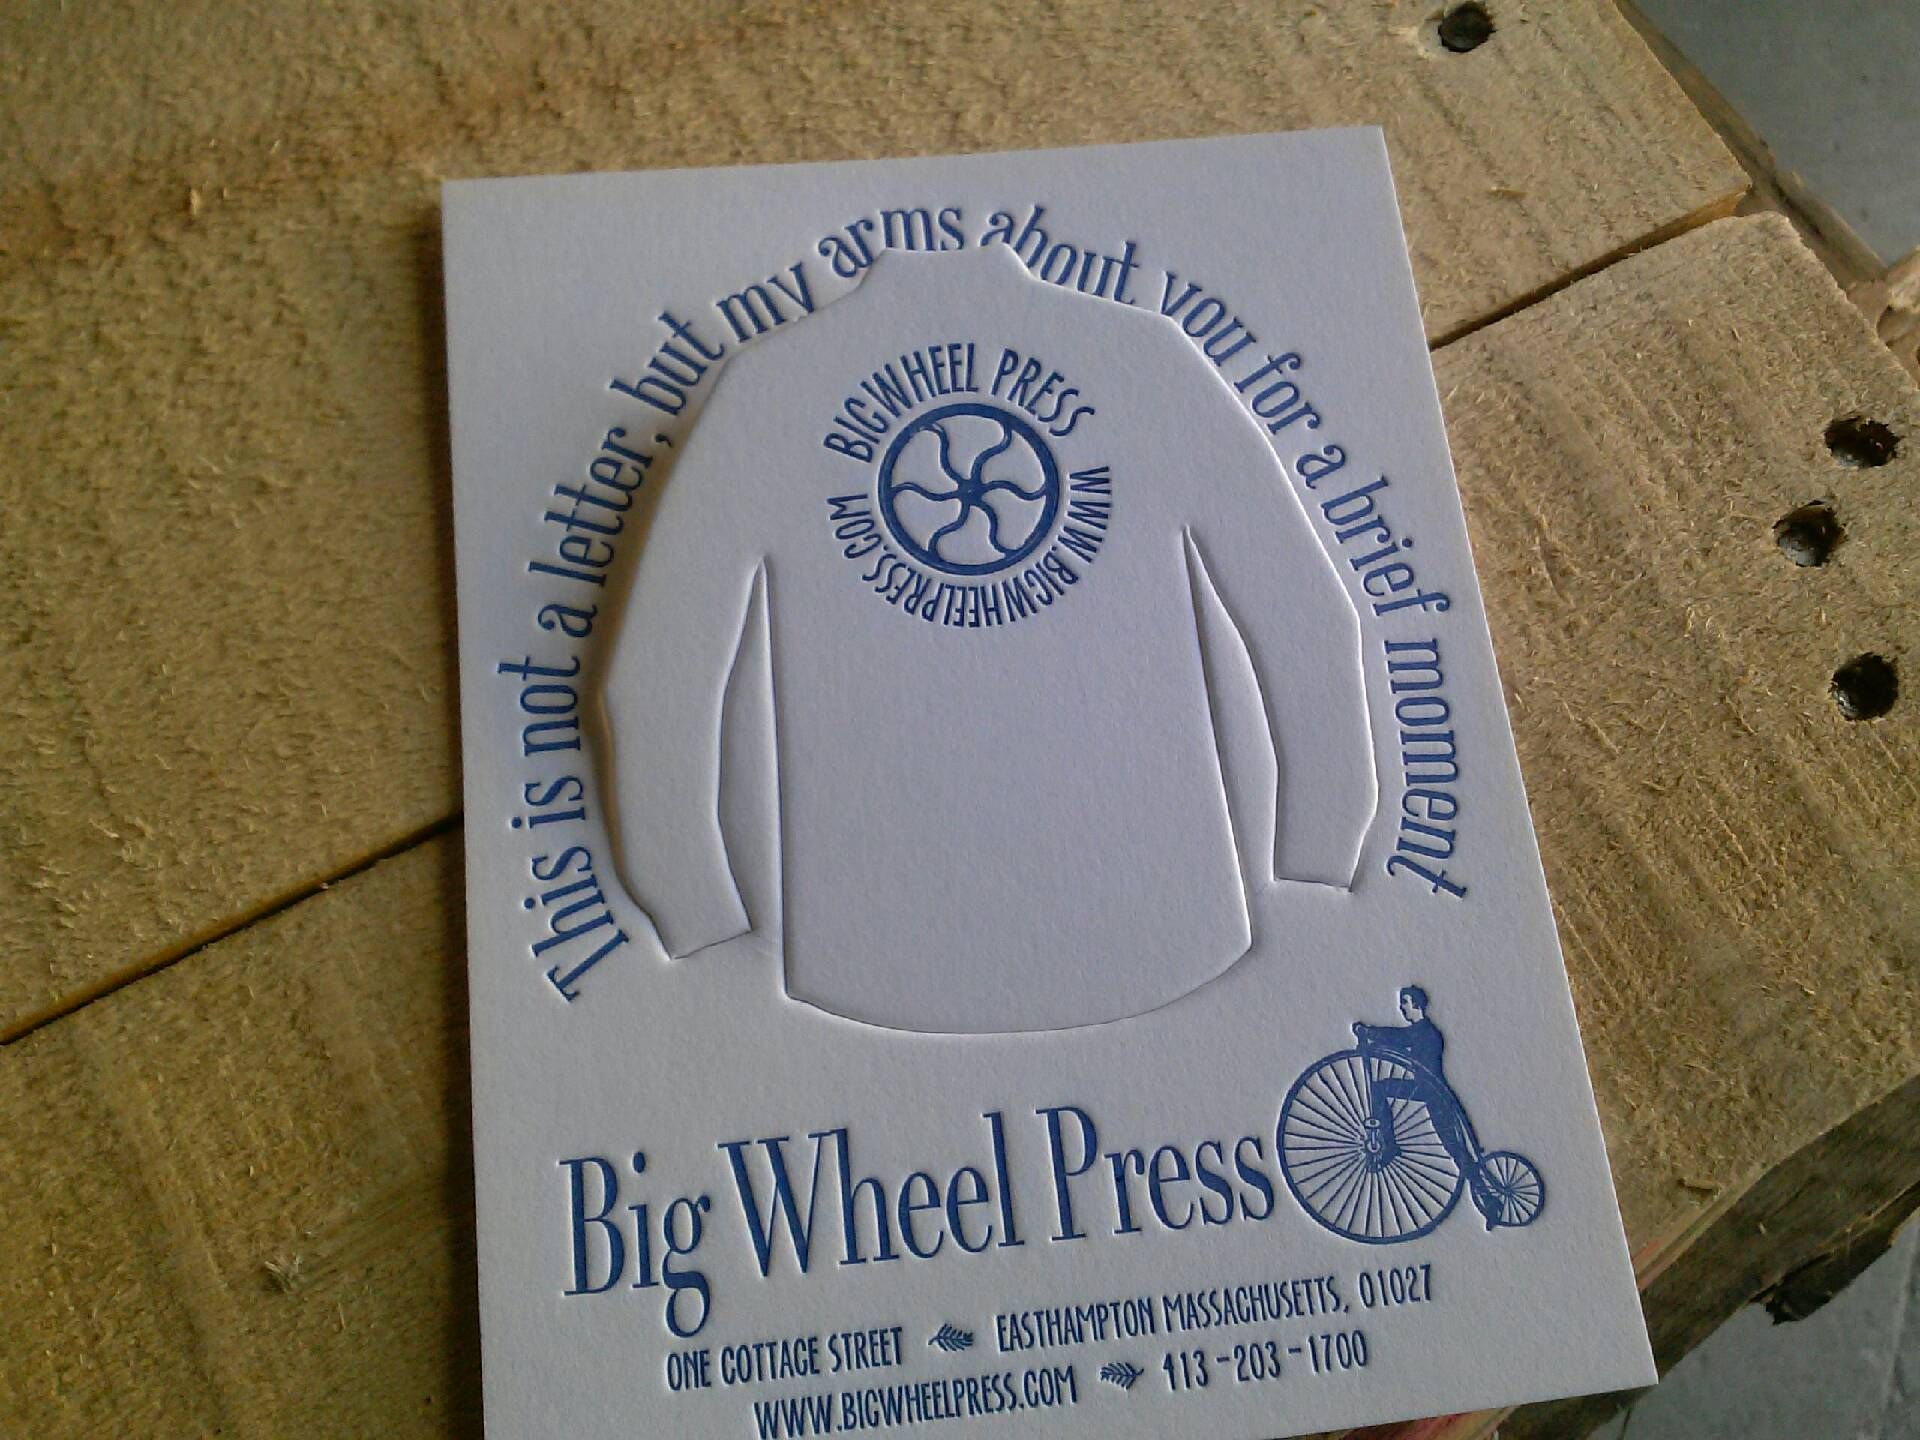 Big Wheel Press giveaway at NSS 2015.  You don't really want to punch it out.